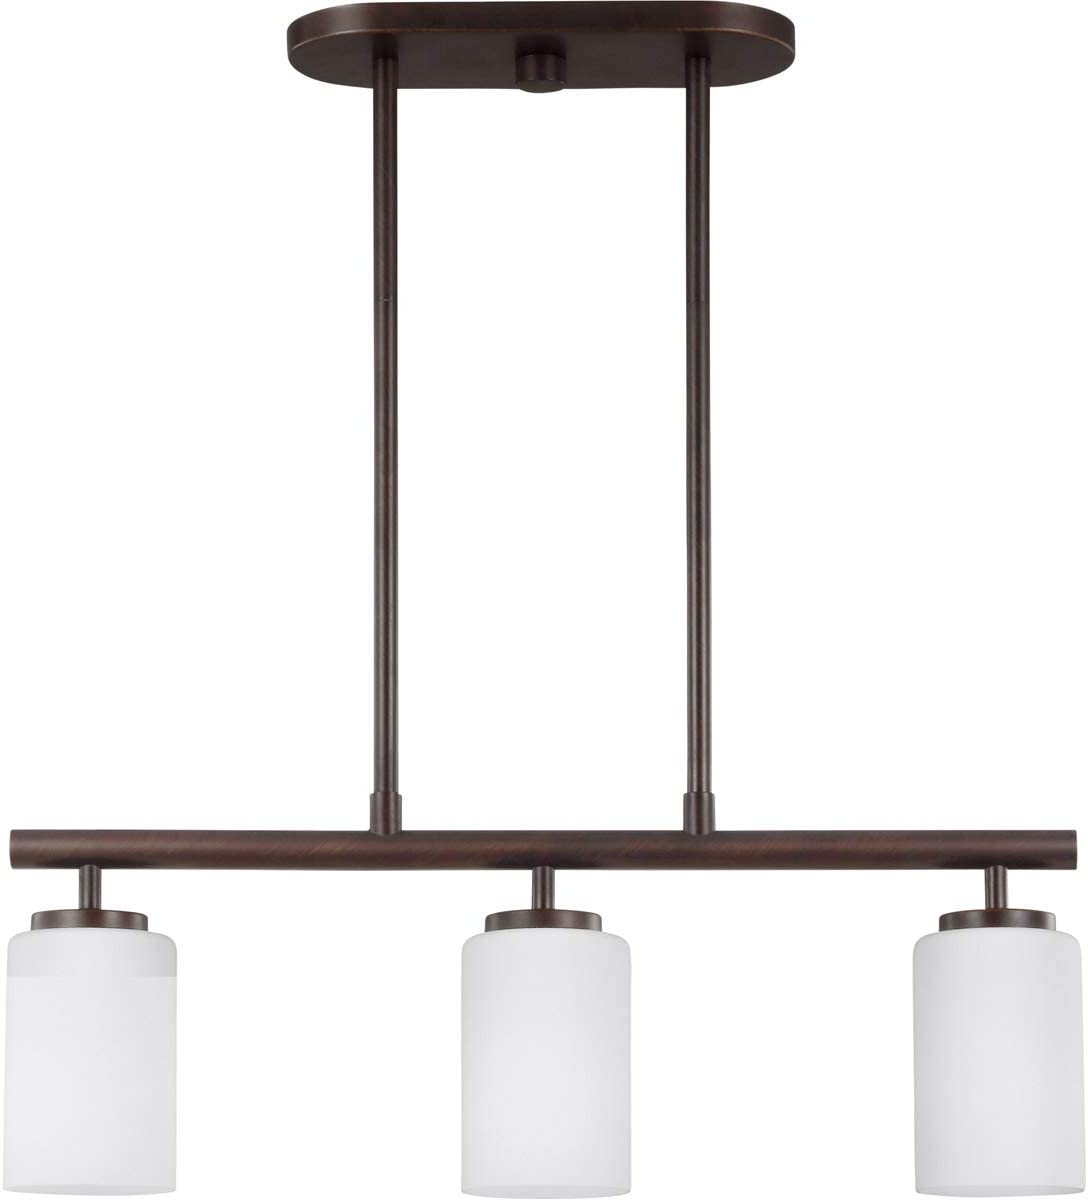 Sea Gull 66160-710 Oslo Pendant, 3-Light 300 Total Watts, Burnt Sienna